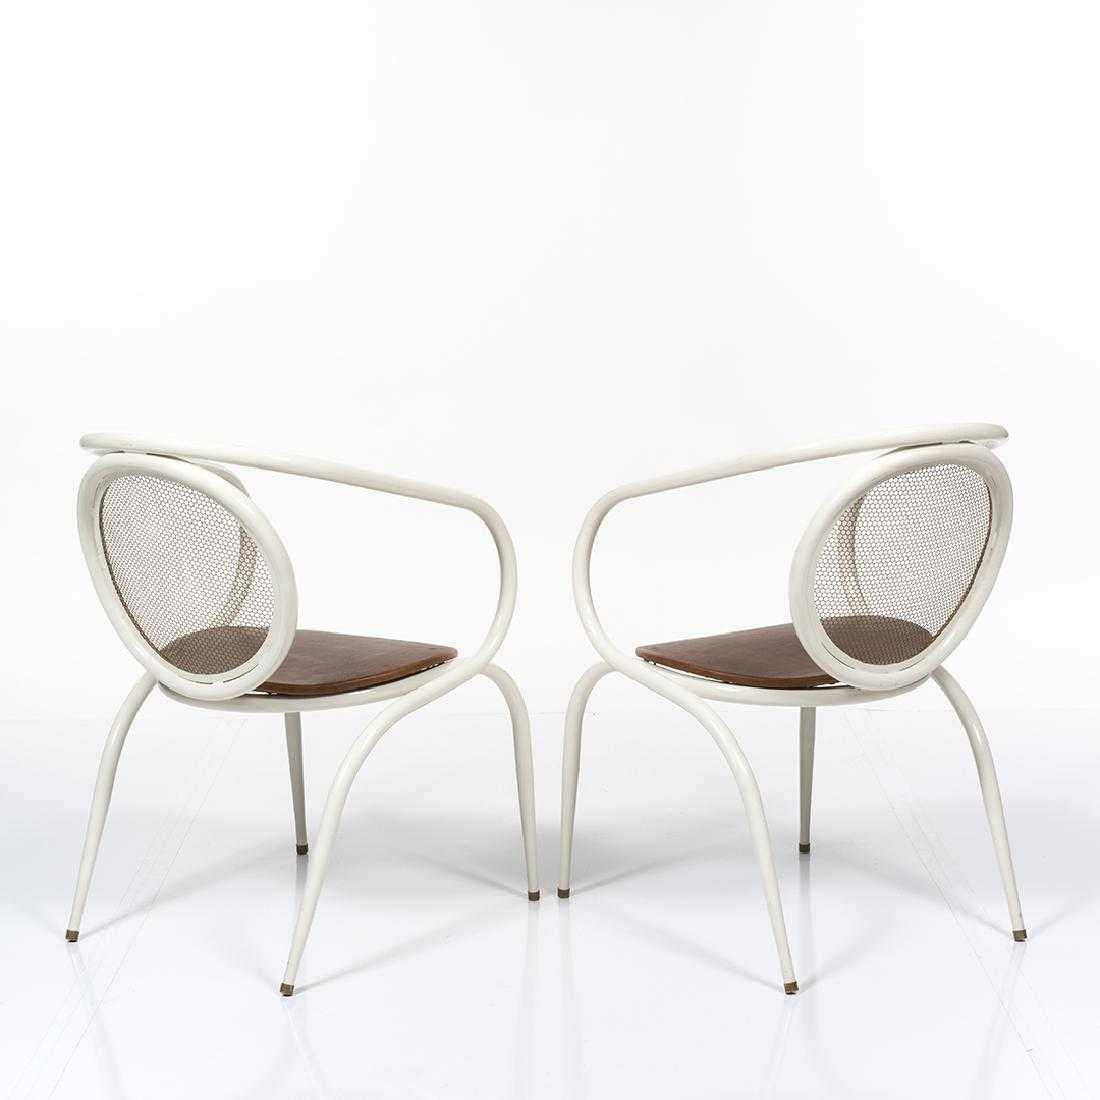 Vintage Metal Tubular Armchairs with Wooden Seats (Set of 4)